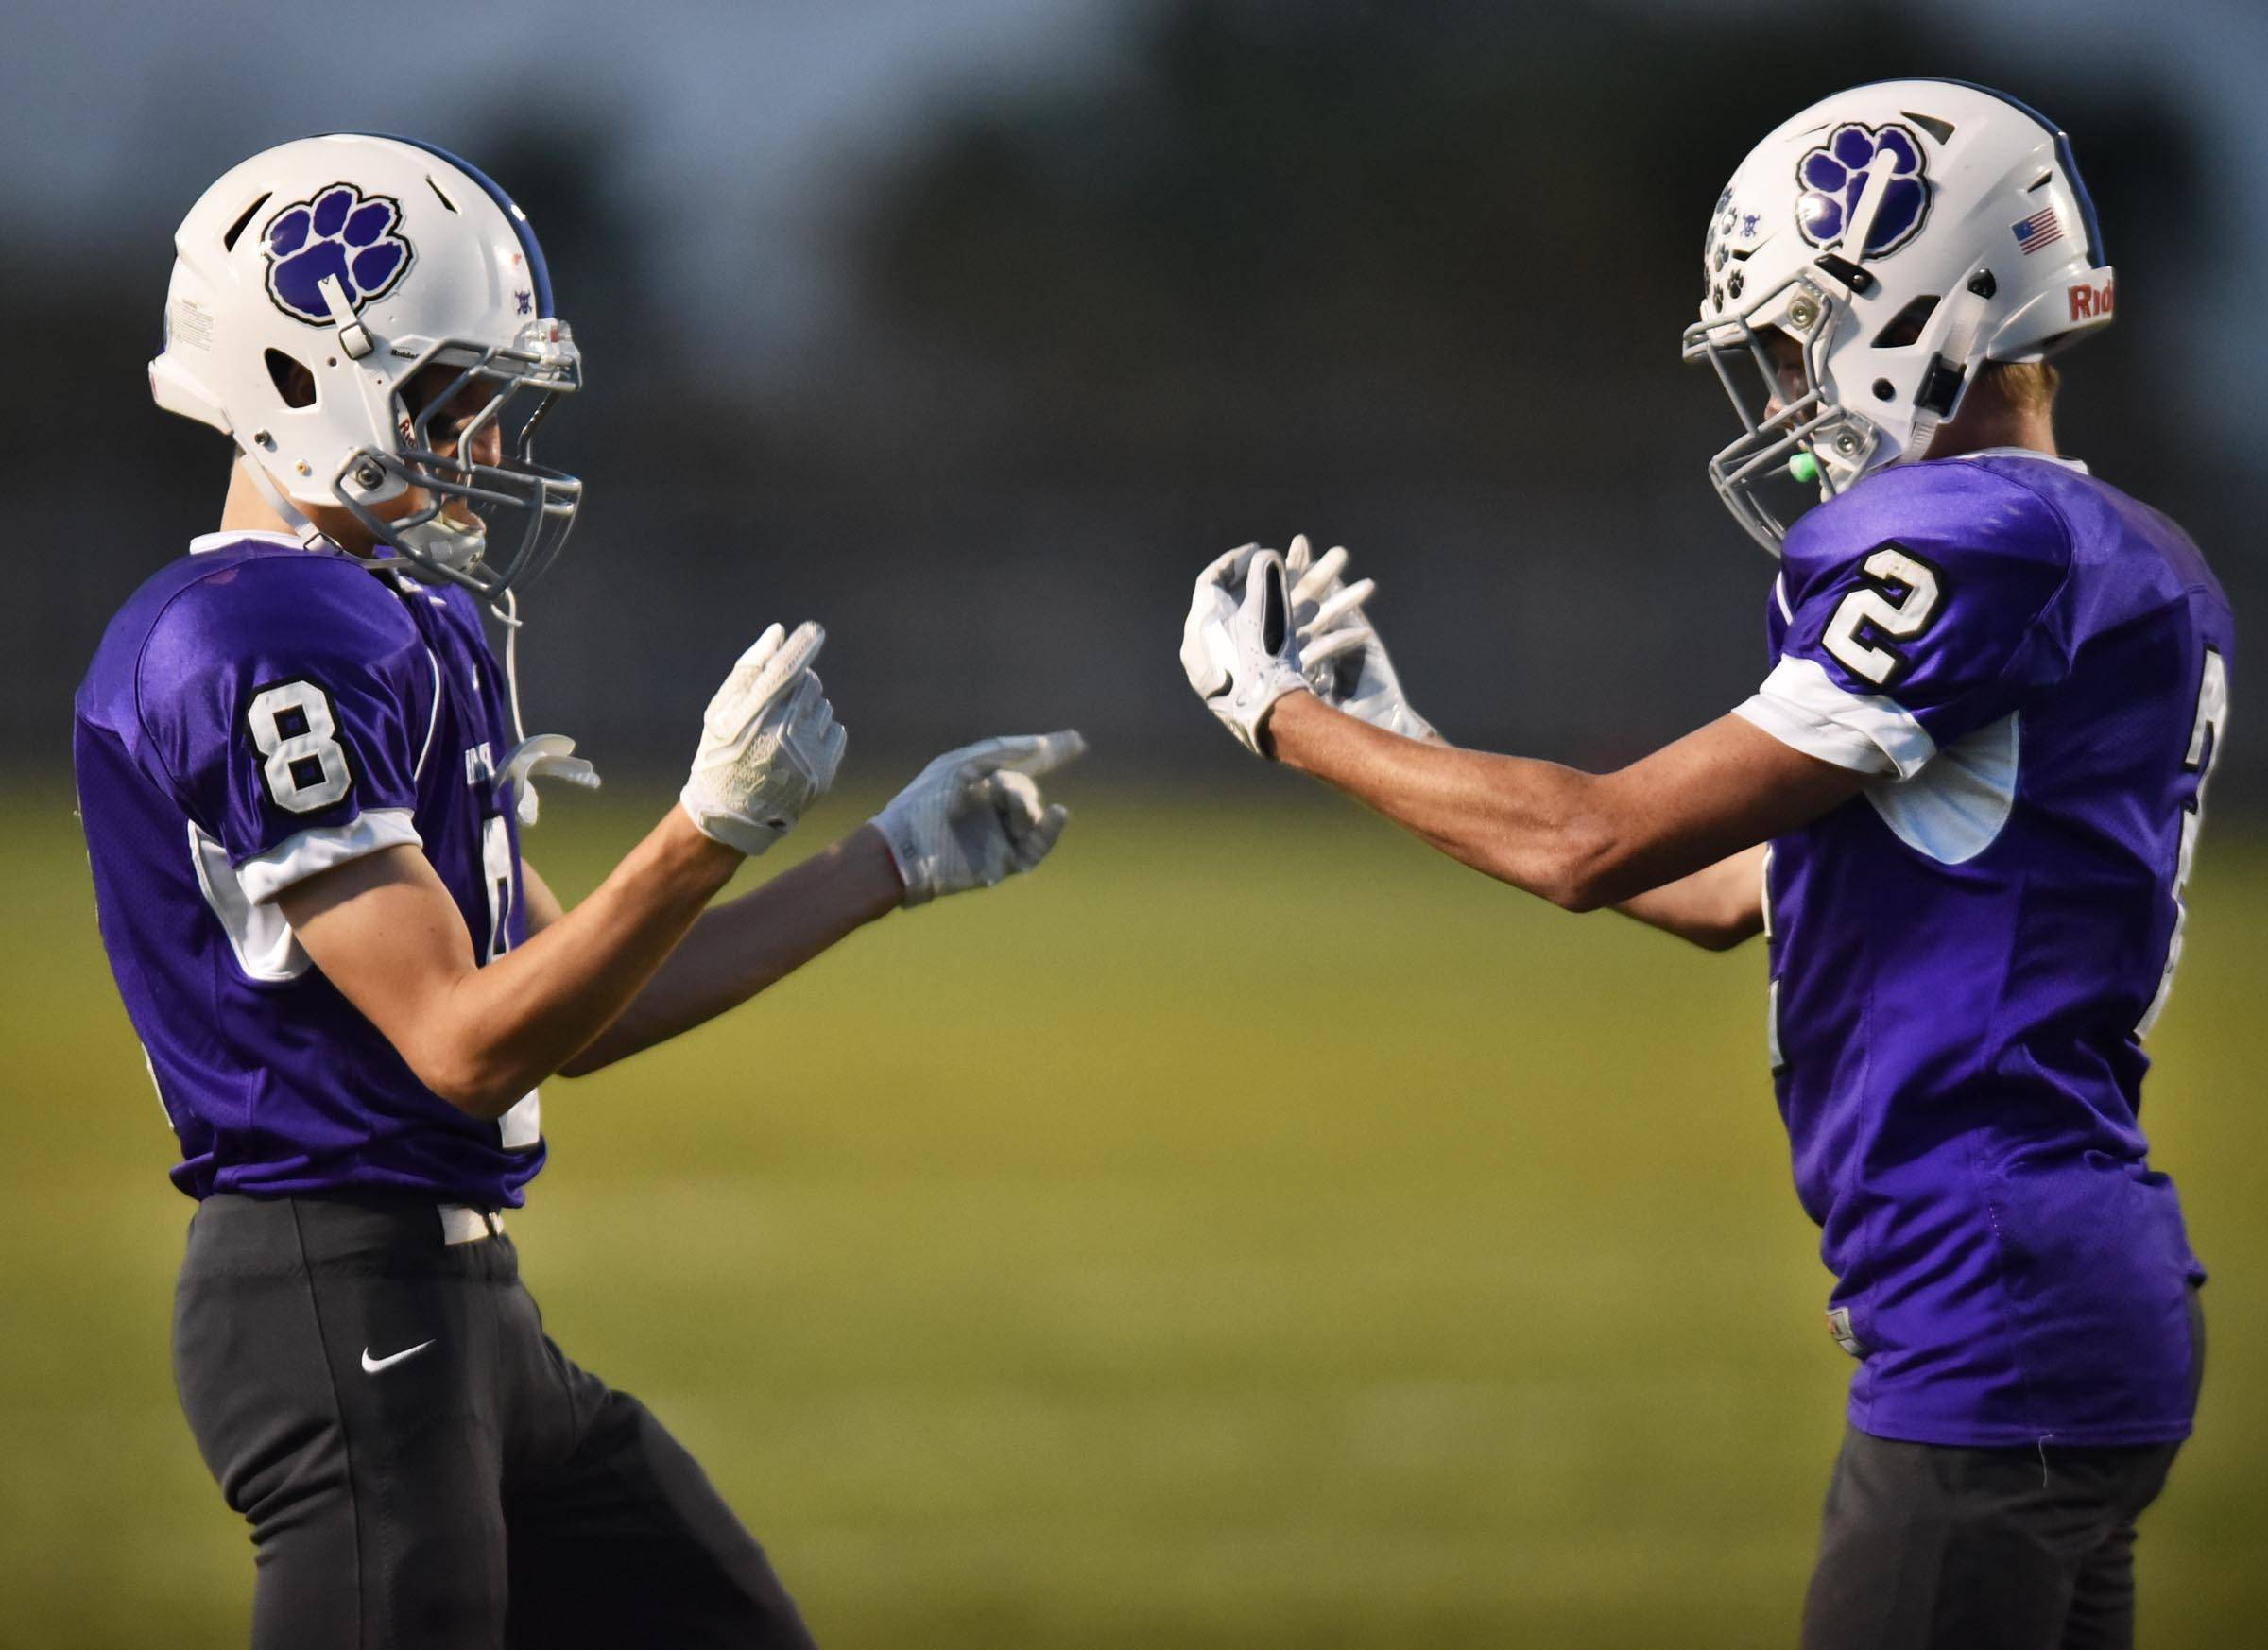 Hampshire's Cameron Fleury celebrates his touchdown catch against Burlington Central with teammate Nicolas Rummell, left, early in the game Friday in Hampshire.